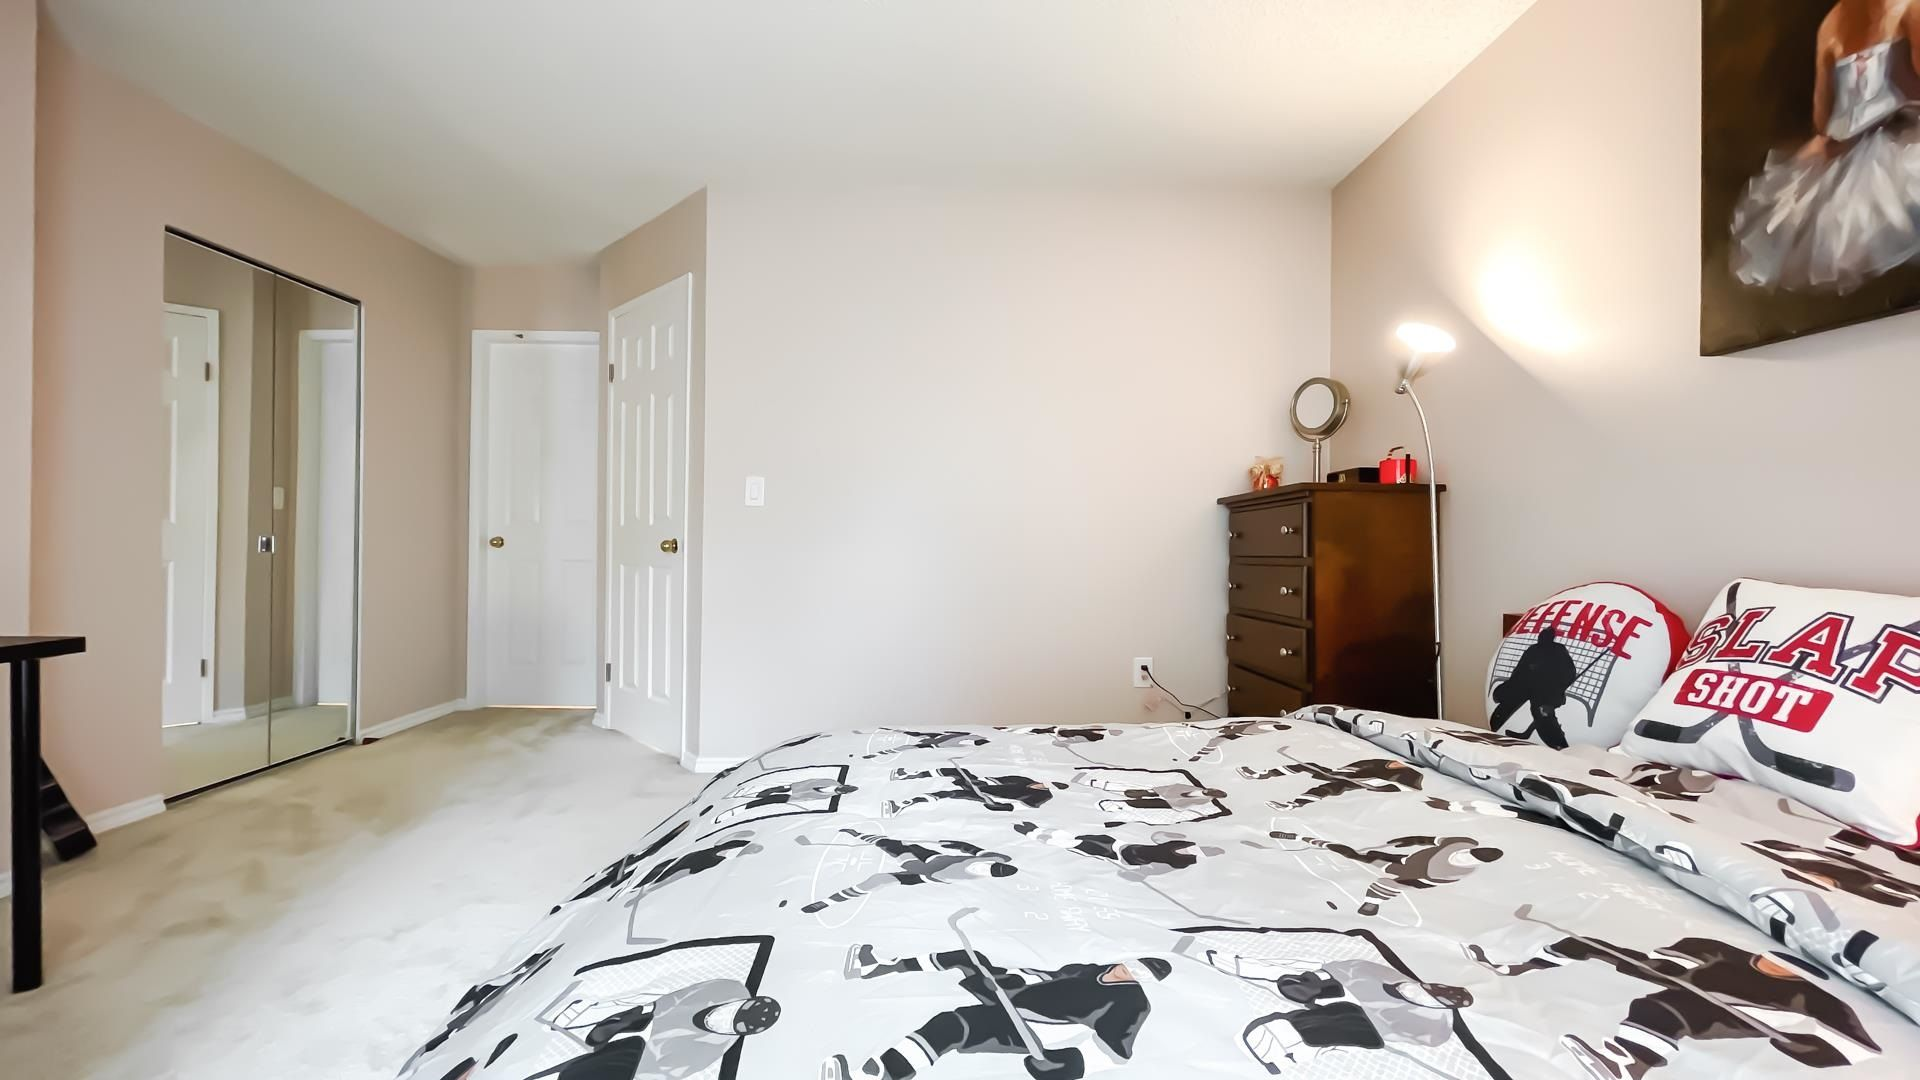 Photo 19: Photos: 66 9000 ASH GROVE CRESCENT in Burnaby: Forest Hills BN Townhouse for sale (Burnaby North)  : MLS®# R2603744